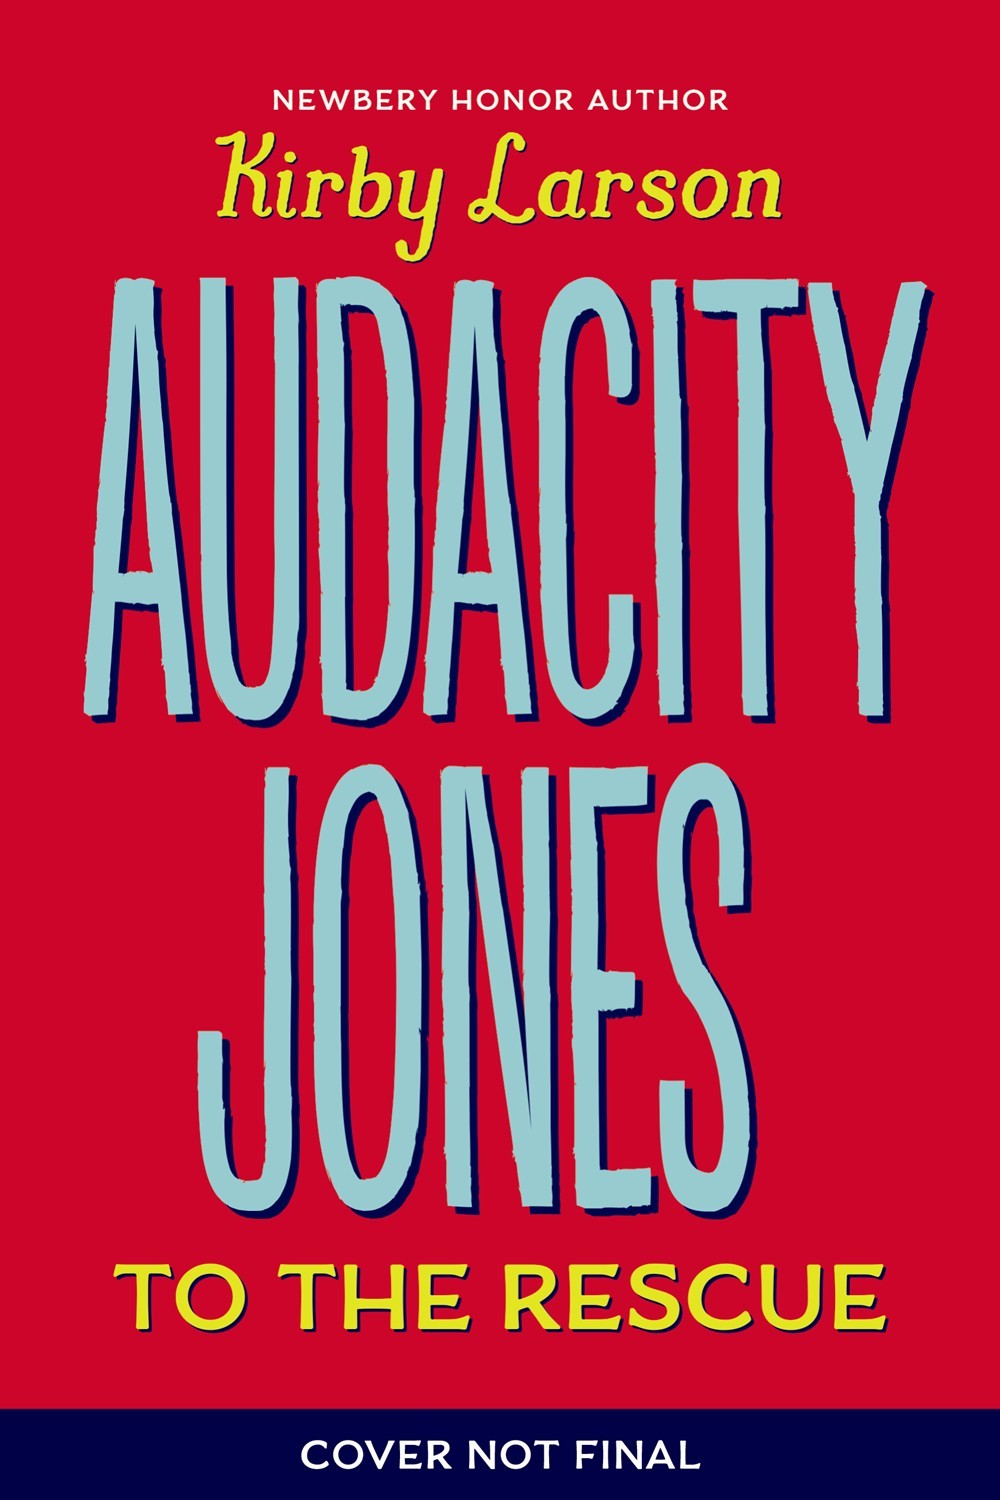 Audacity Jones to the Rescue Kirby Larson